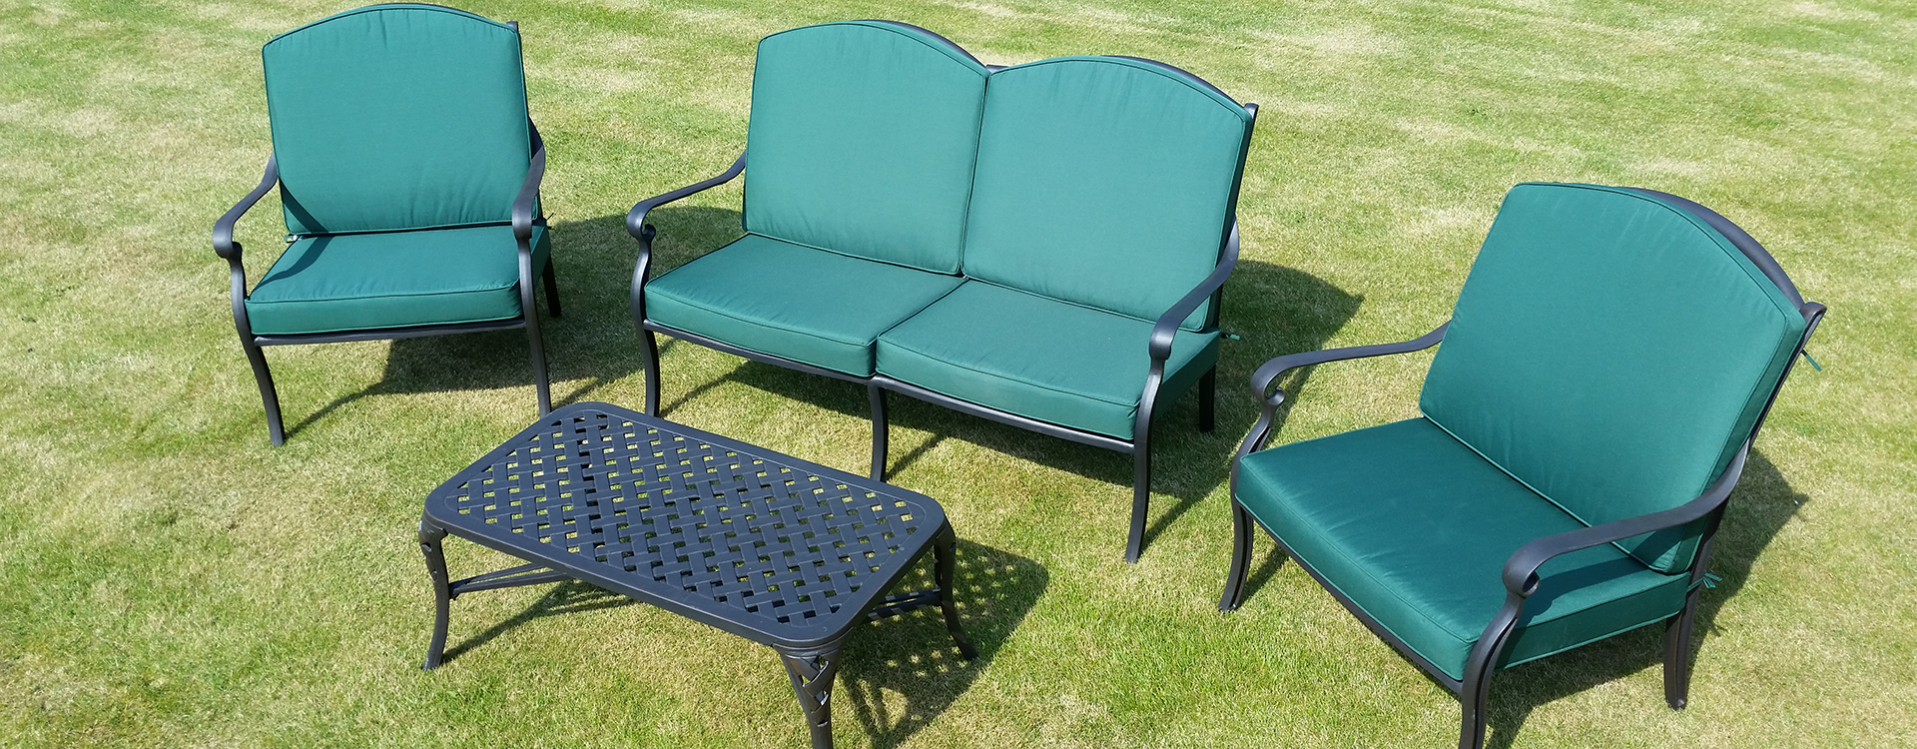 Cast Aluminium Garden Furniture | Free Fast Delivery With Regard To Michelle Metal Garden Benches (View 14 of 25)